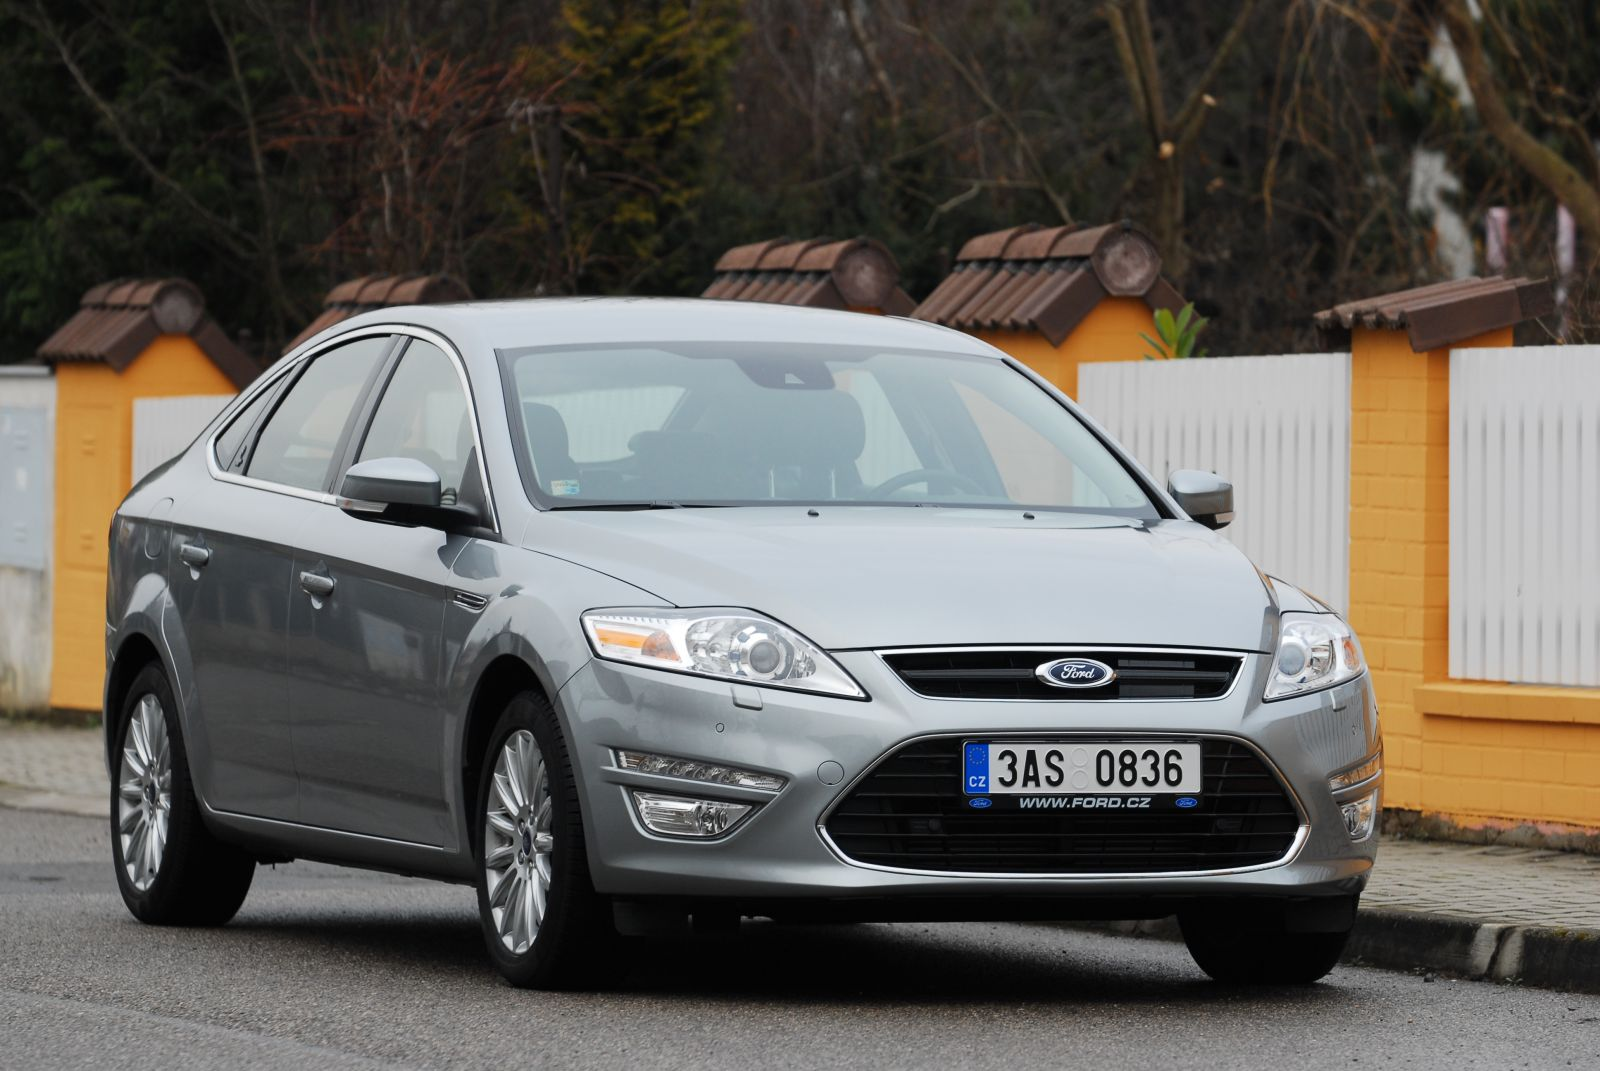 Ford Mondeo Titanium 2.0 TDCi 180 (2015) review by CAR ...